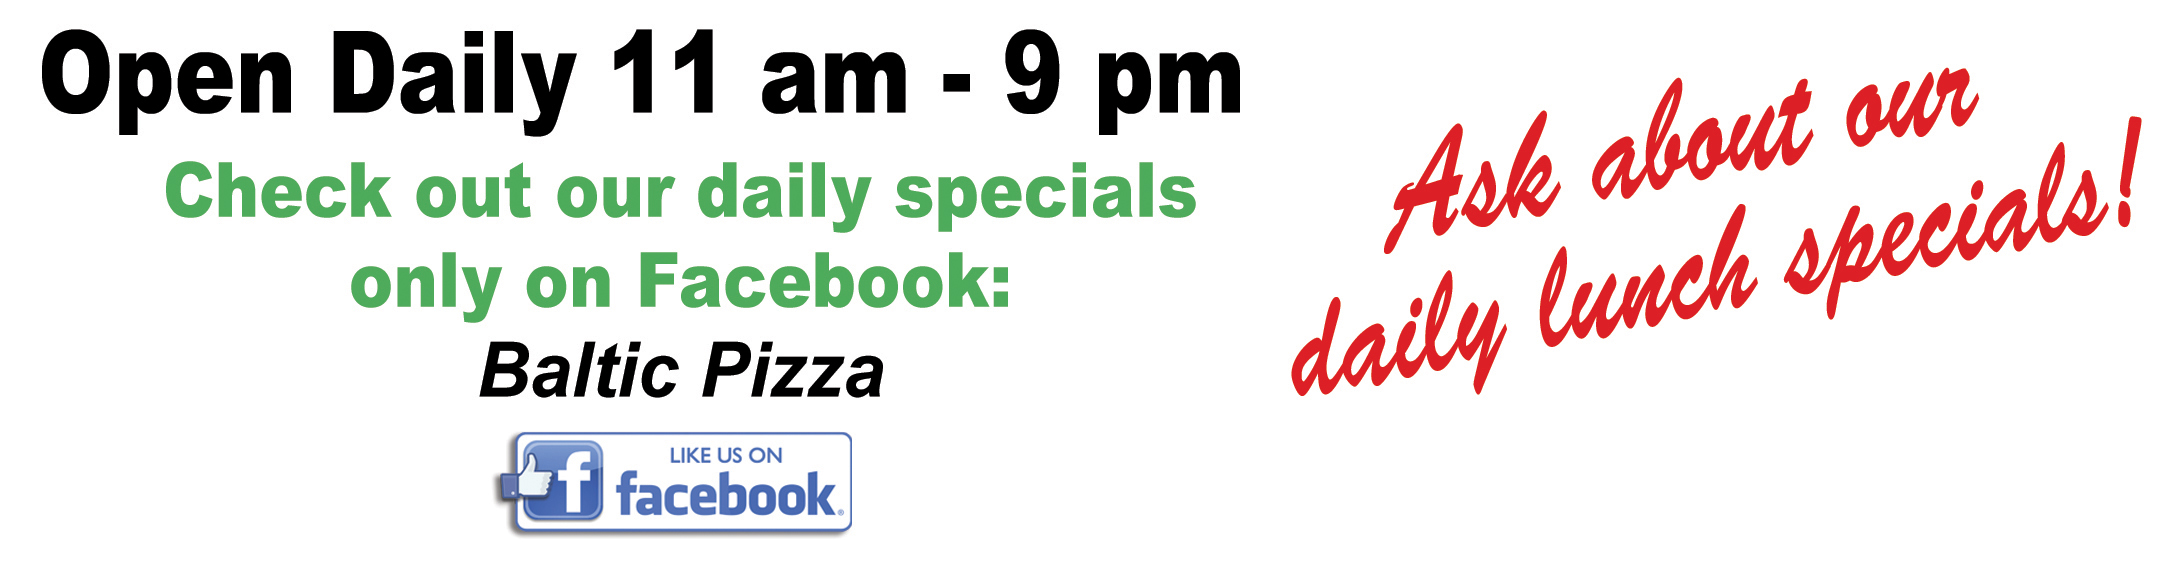 Check out our specials at Baltic Pizza on Facebook